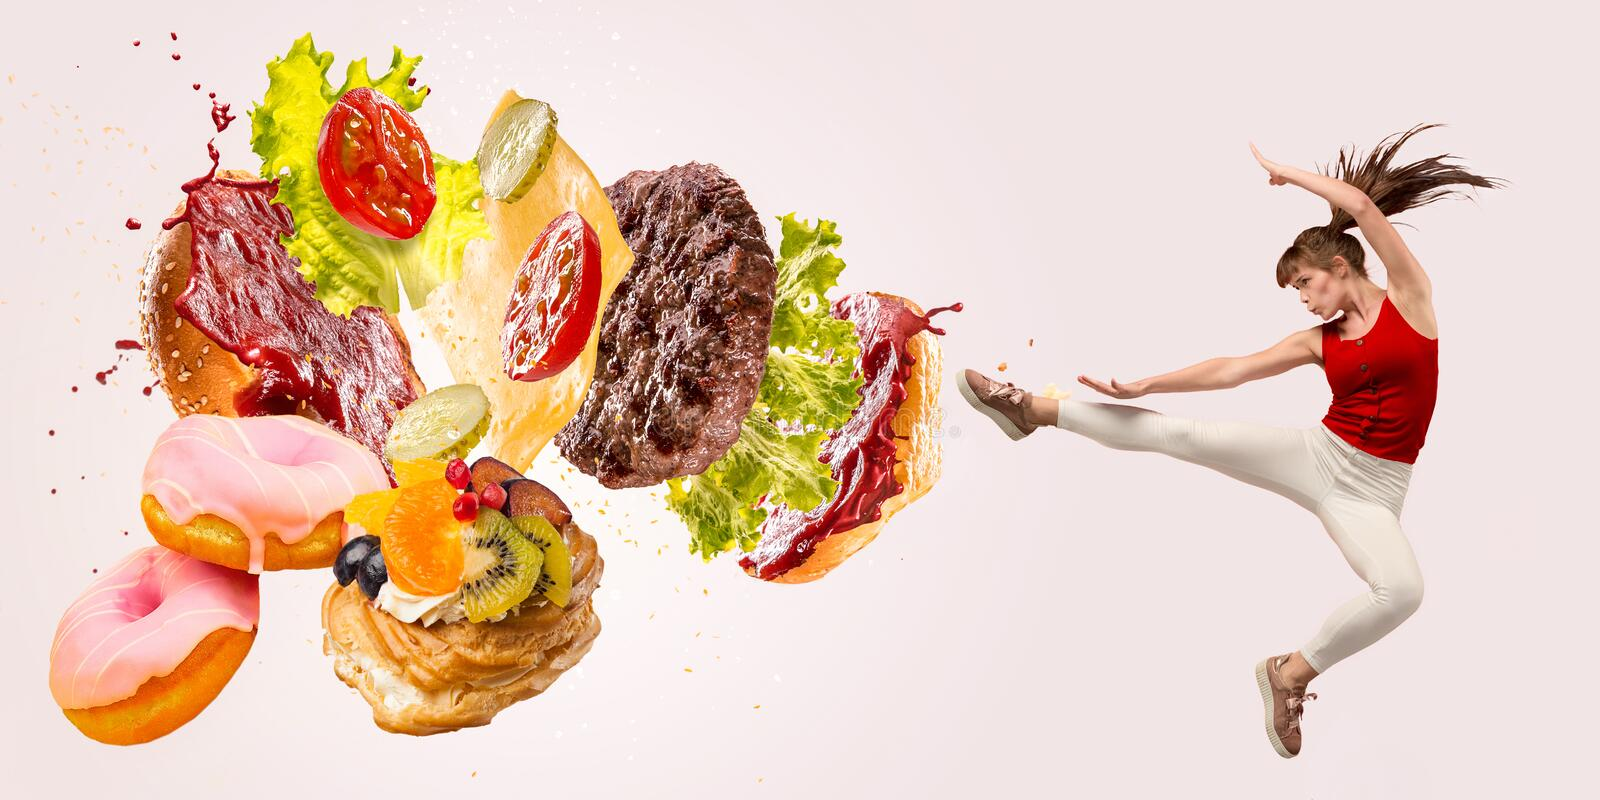 Burger`s crashing by the boxer isolated on white background. Fight the fast food. Burger`s crashing by the boxer isolated on white background. Combination of royalty free stock photos